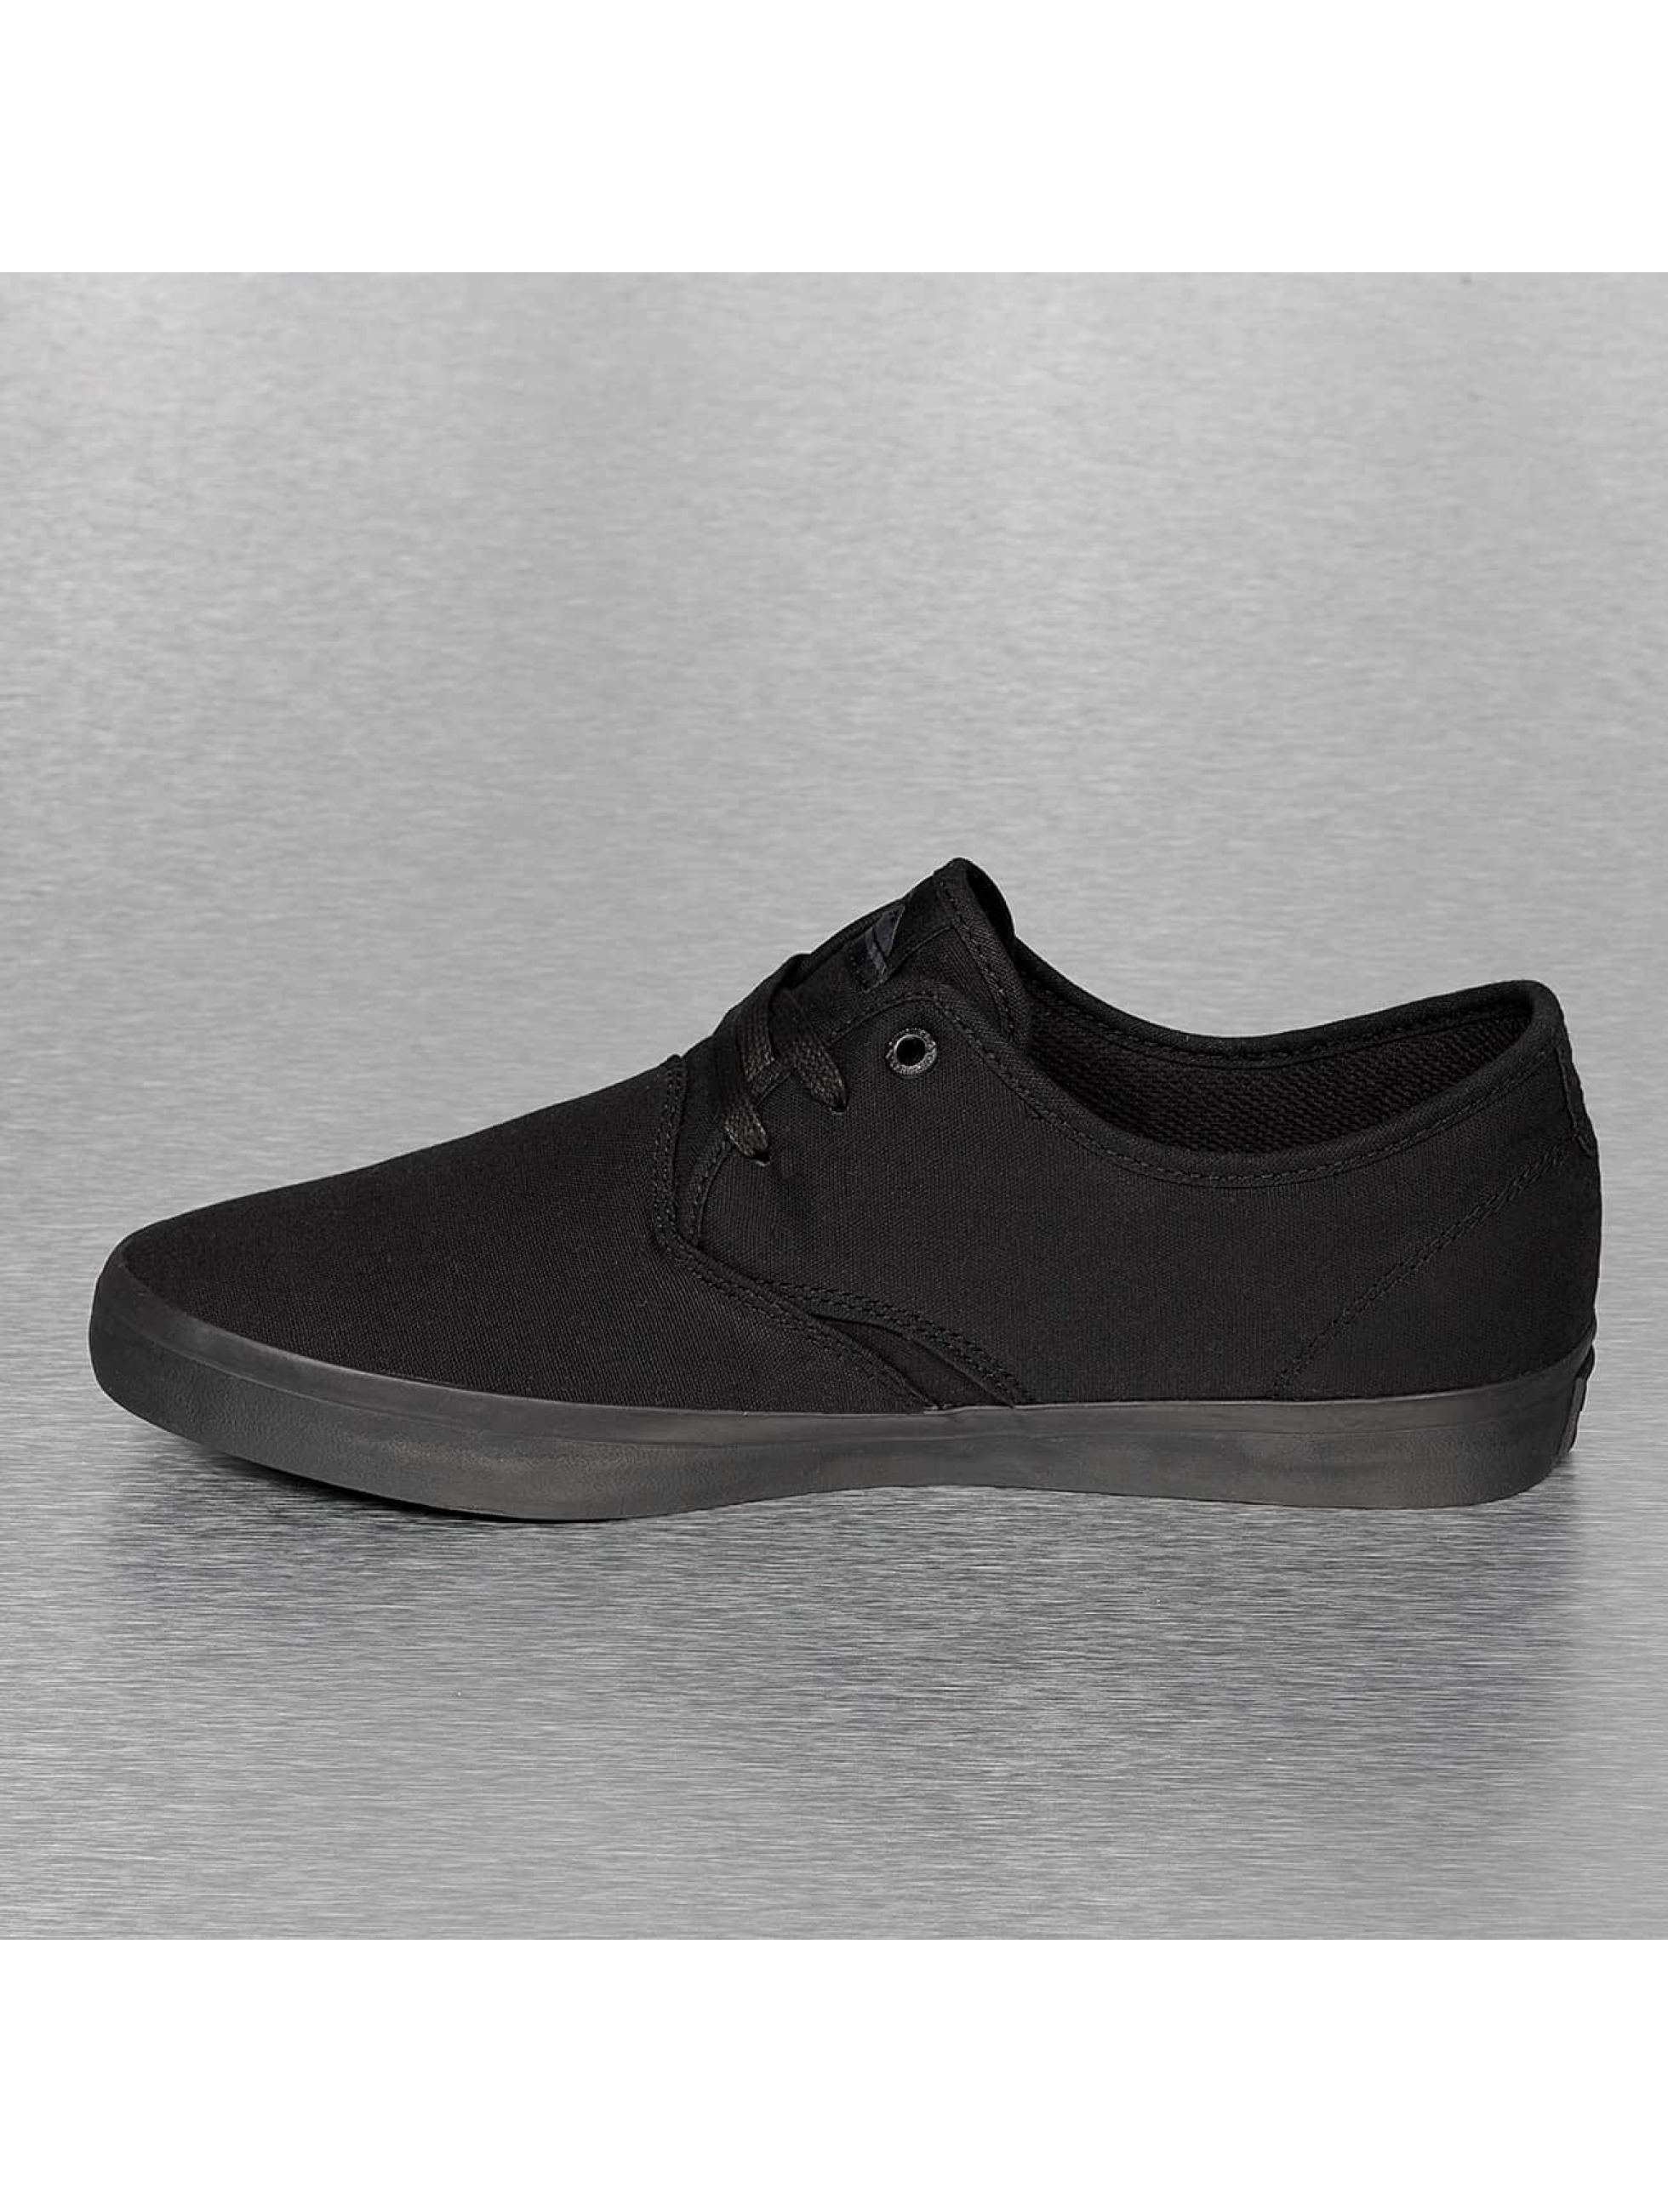 Quiksilver Sneakers Shorebreak black